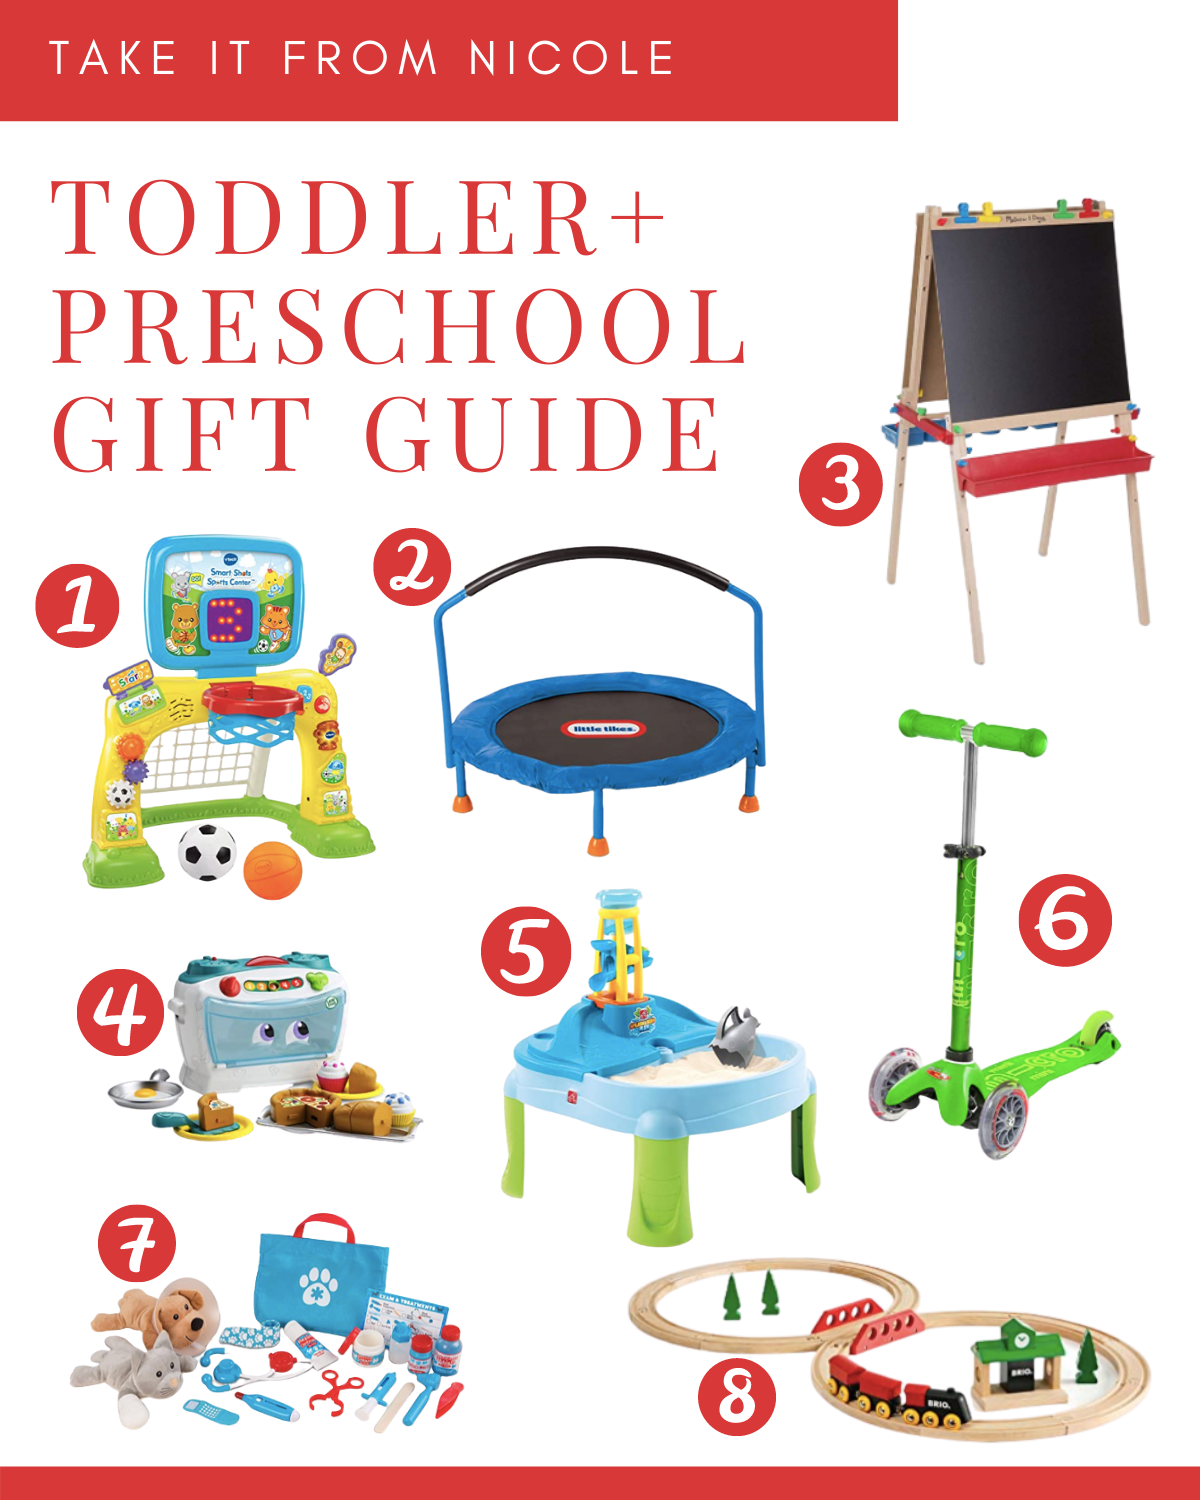 Gift ideas for toddlers and preschoolers. Lots of gross motor and imaginative play options. Take the guess work out of holiday and christmas gift giving.